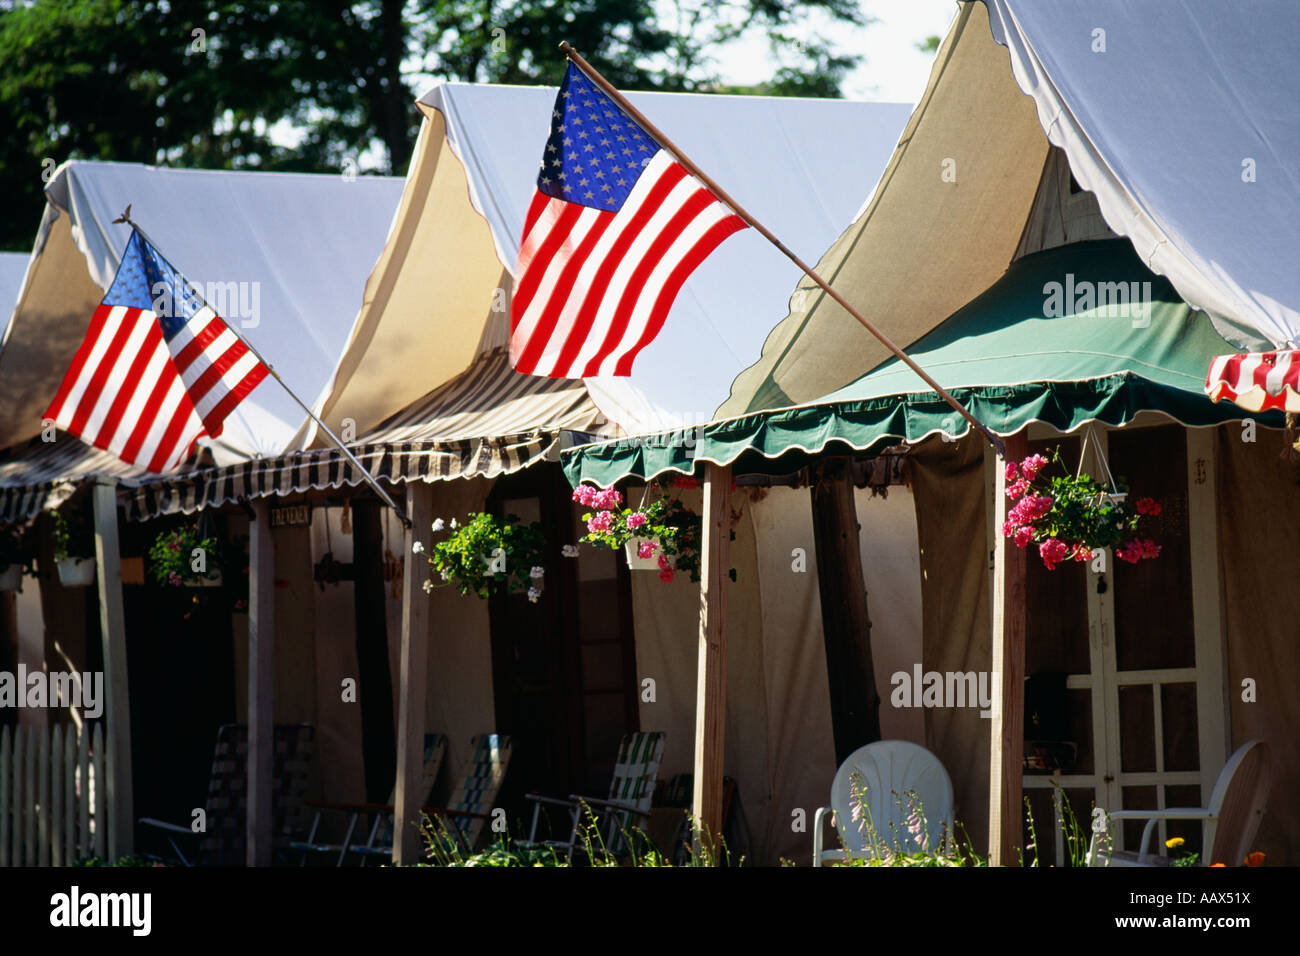 Tent C& houses Ocean Grove NJ & Tent Camp houses Ocean Grove NJ Stock Photo Royalty Free Image ...